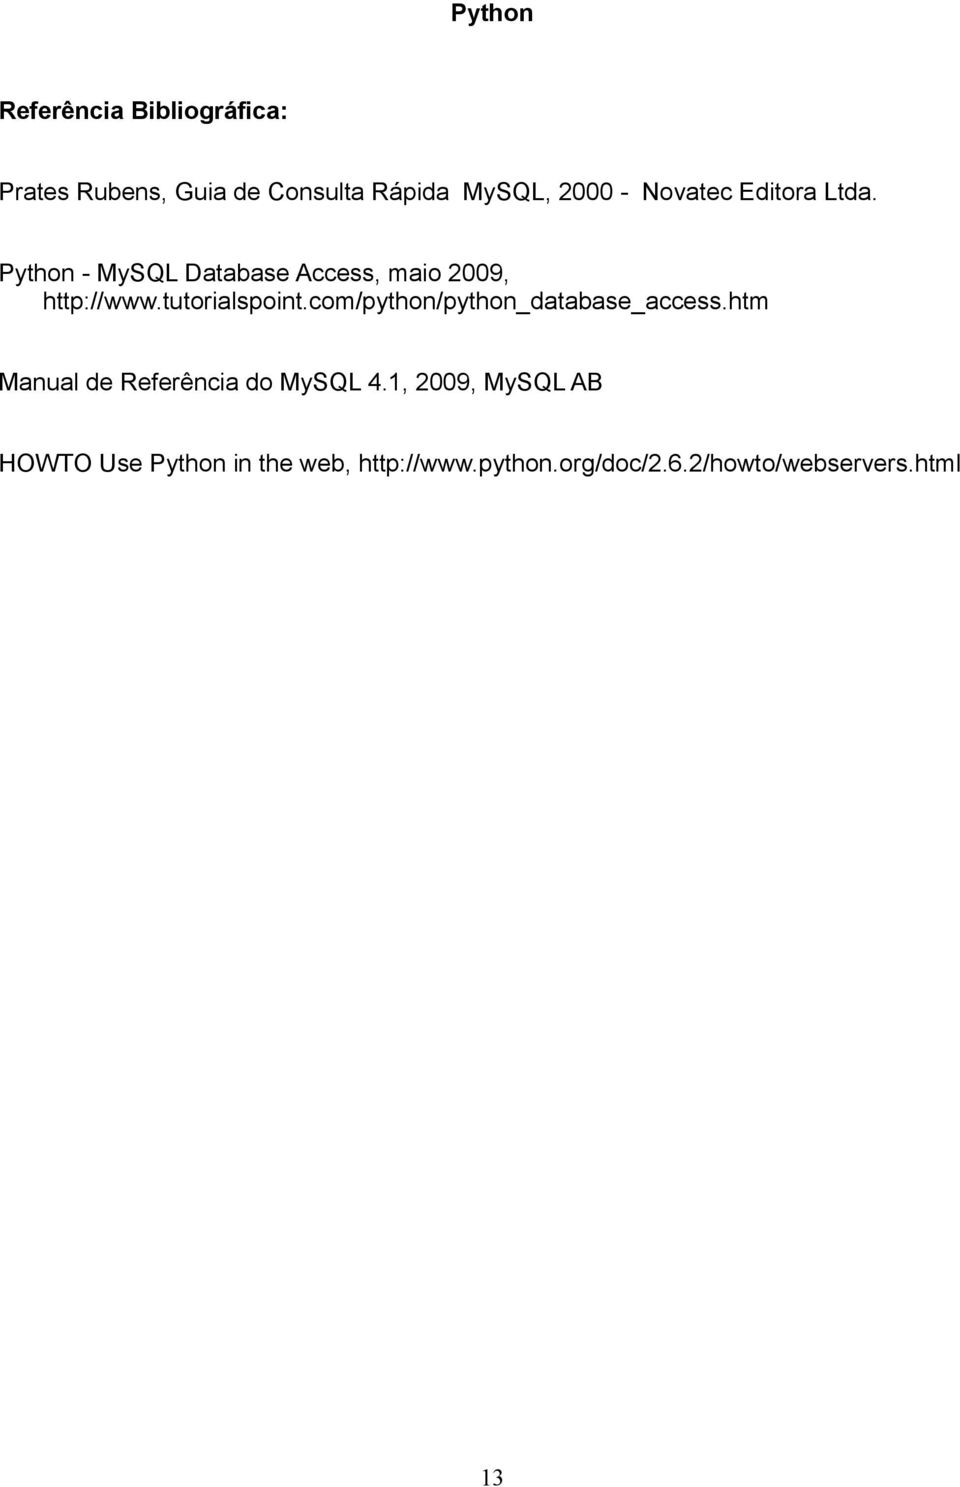 tutorialspoint.com/python/python_database_access.htm Manual de Referência do MySQL 4.